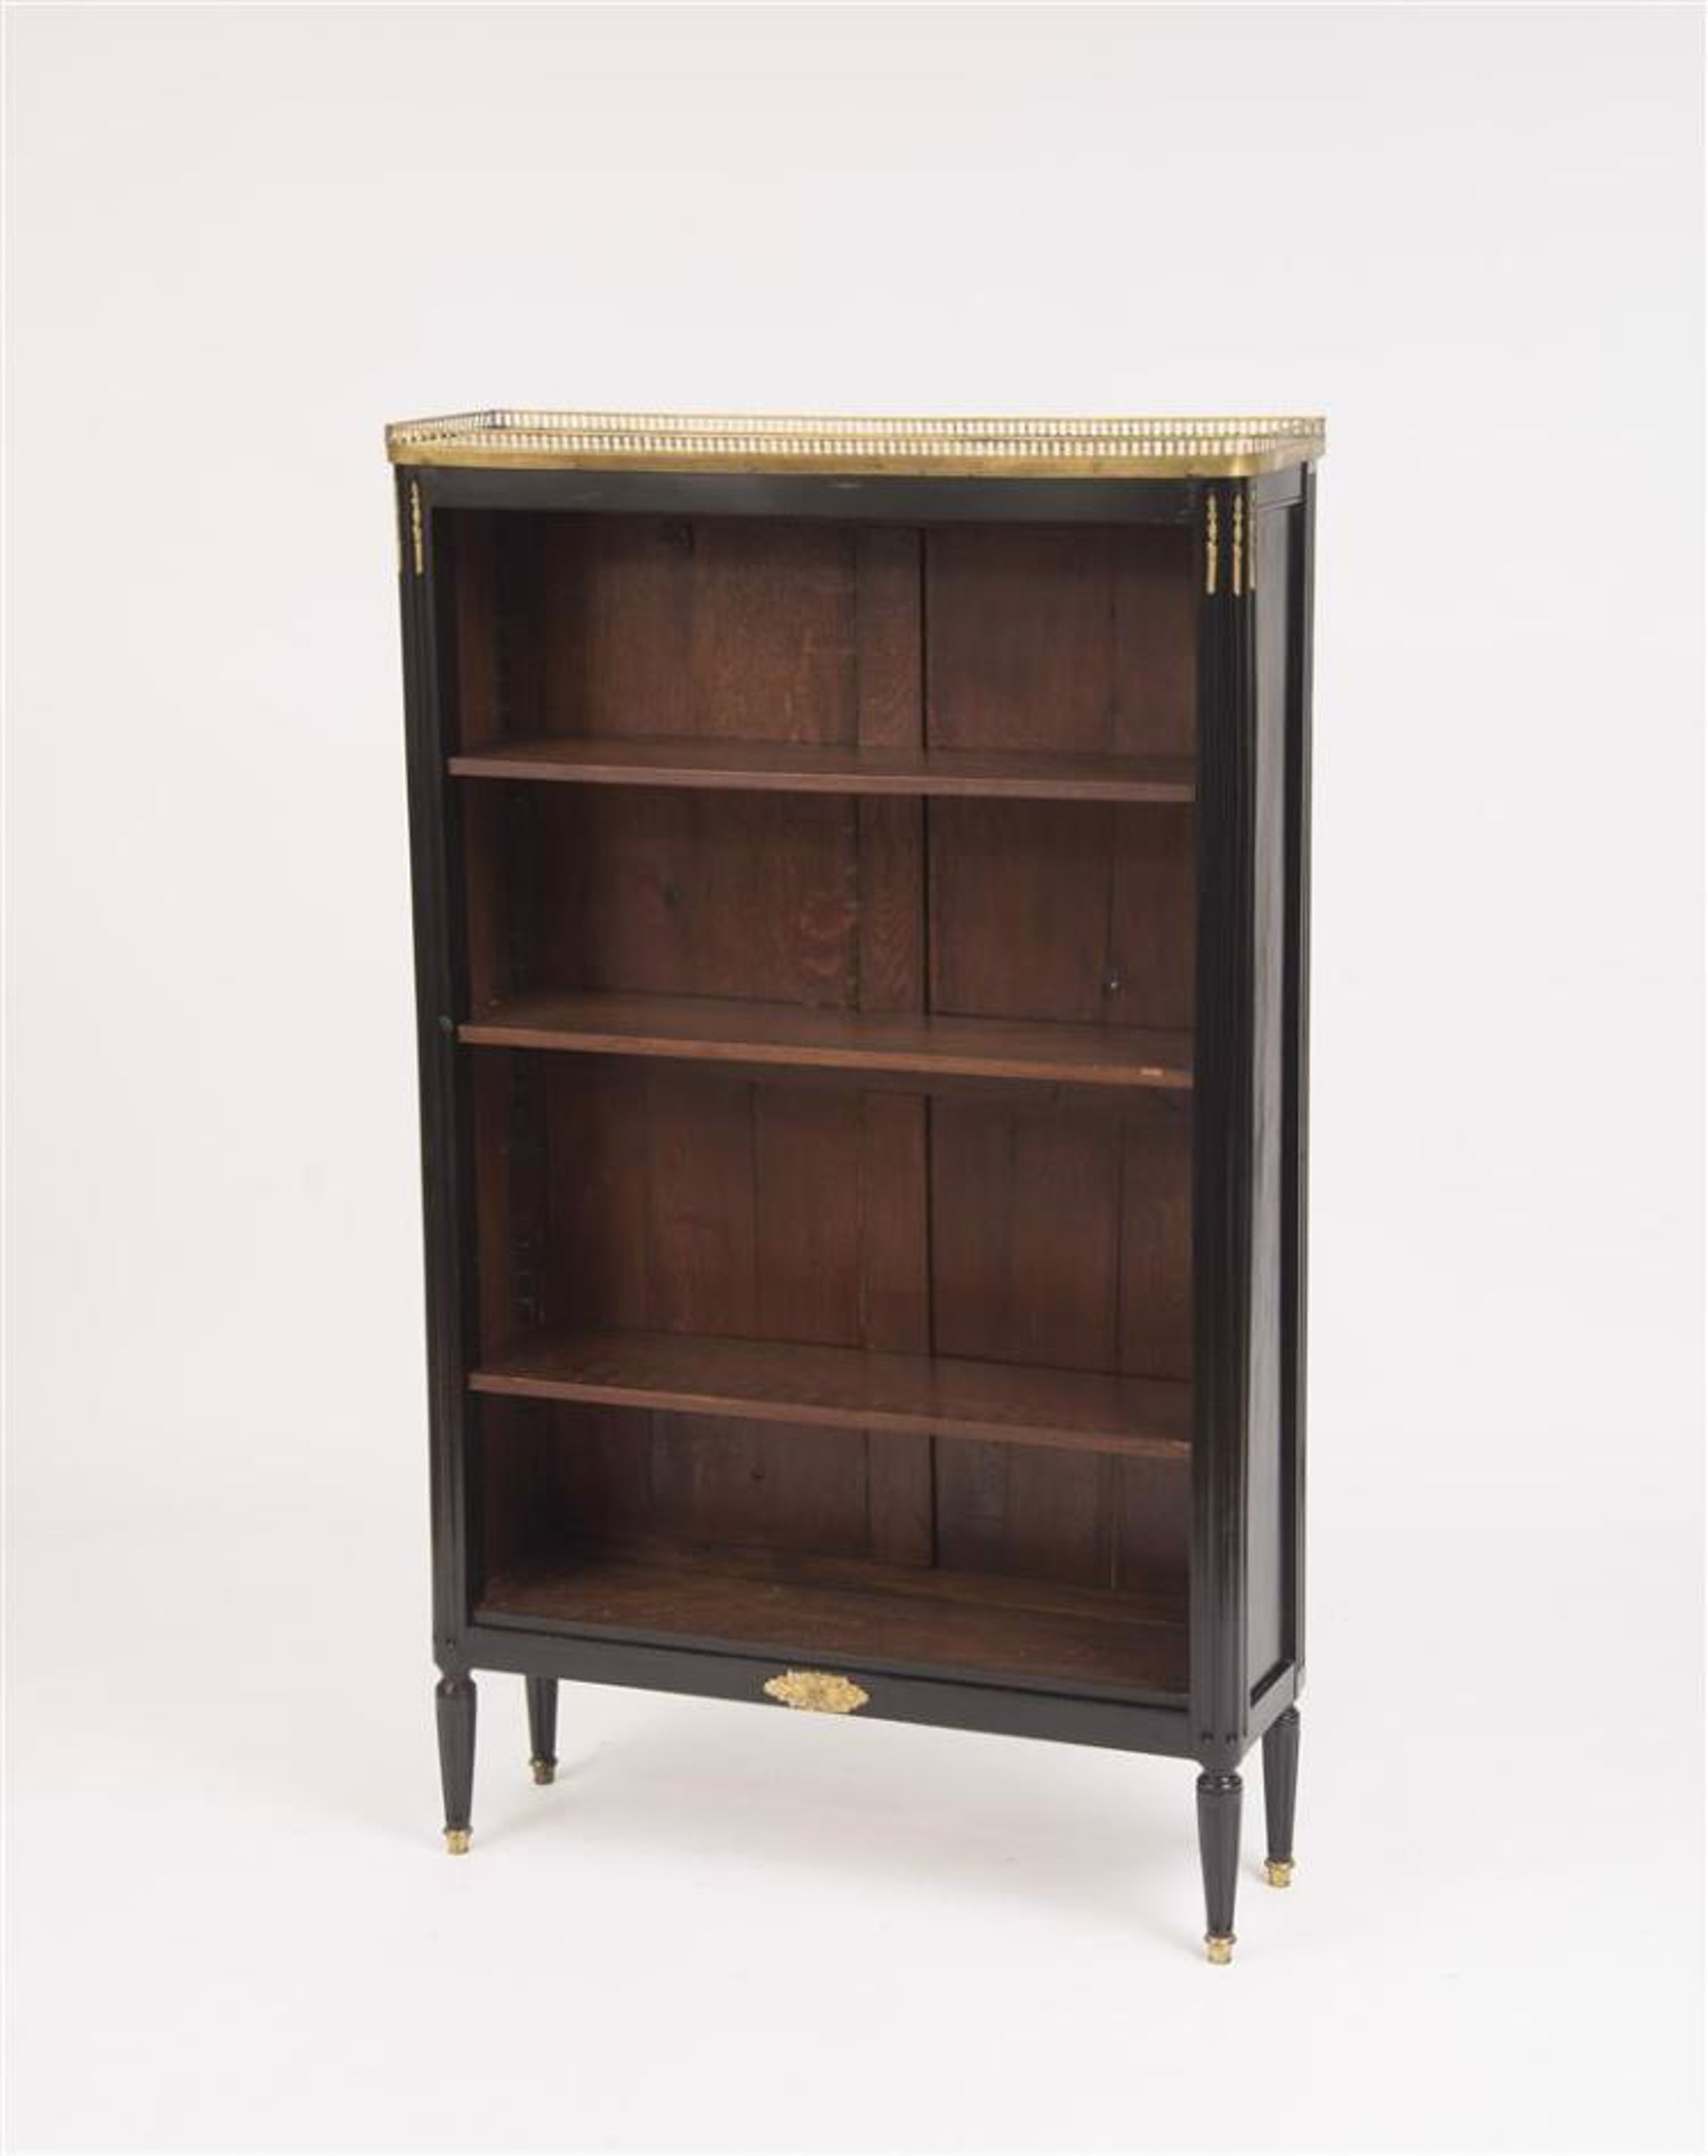 LOUIS XVI STYLE BOOKCASE WITH MARBLE TOP